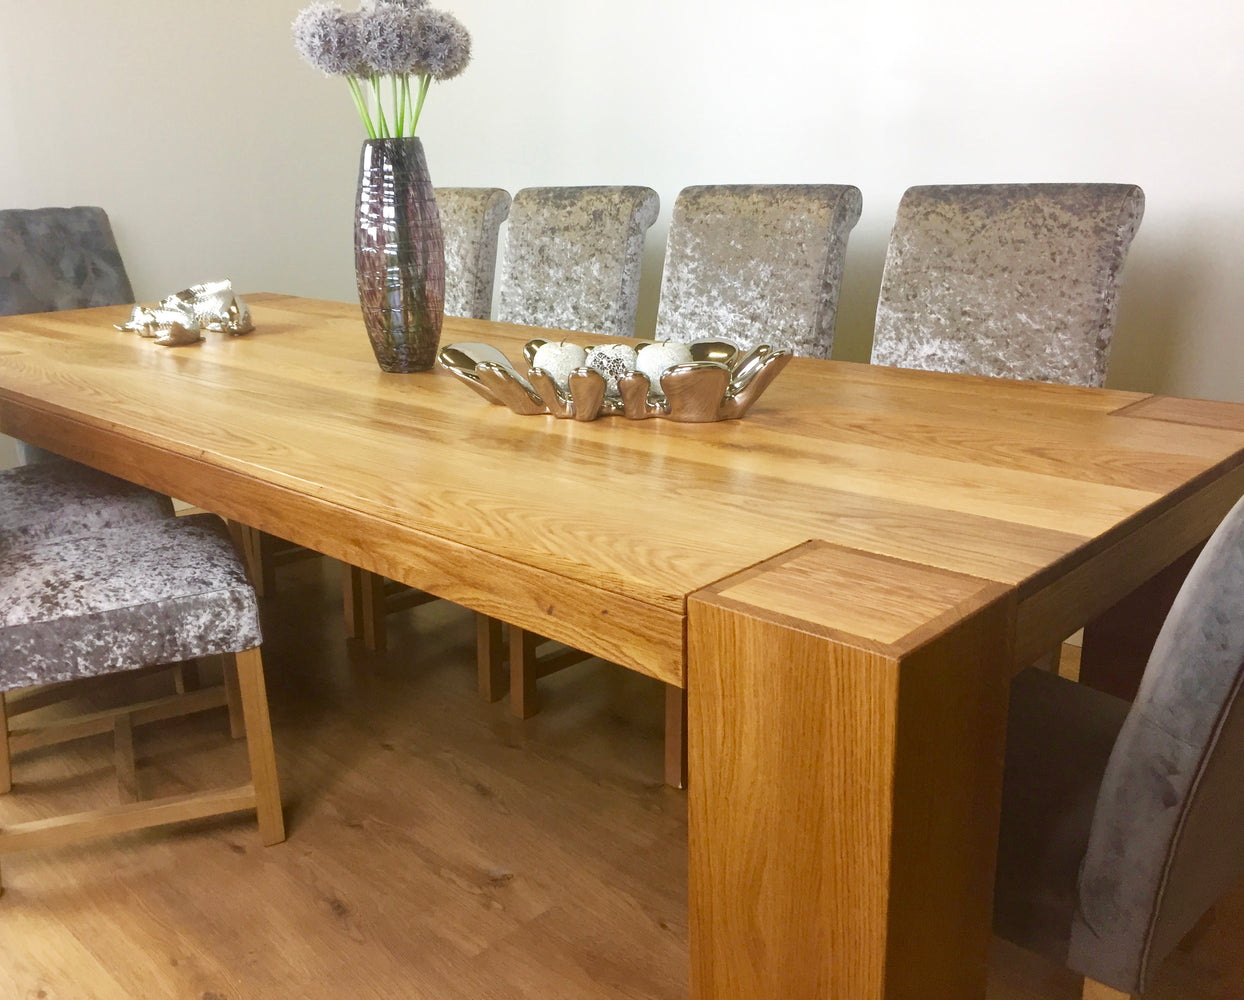 The Quercus Oak Classic Through-Leg Table